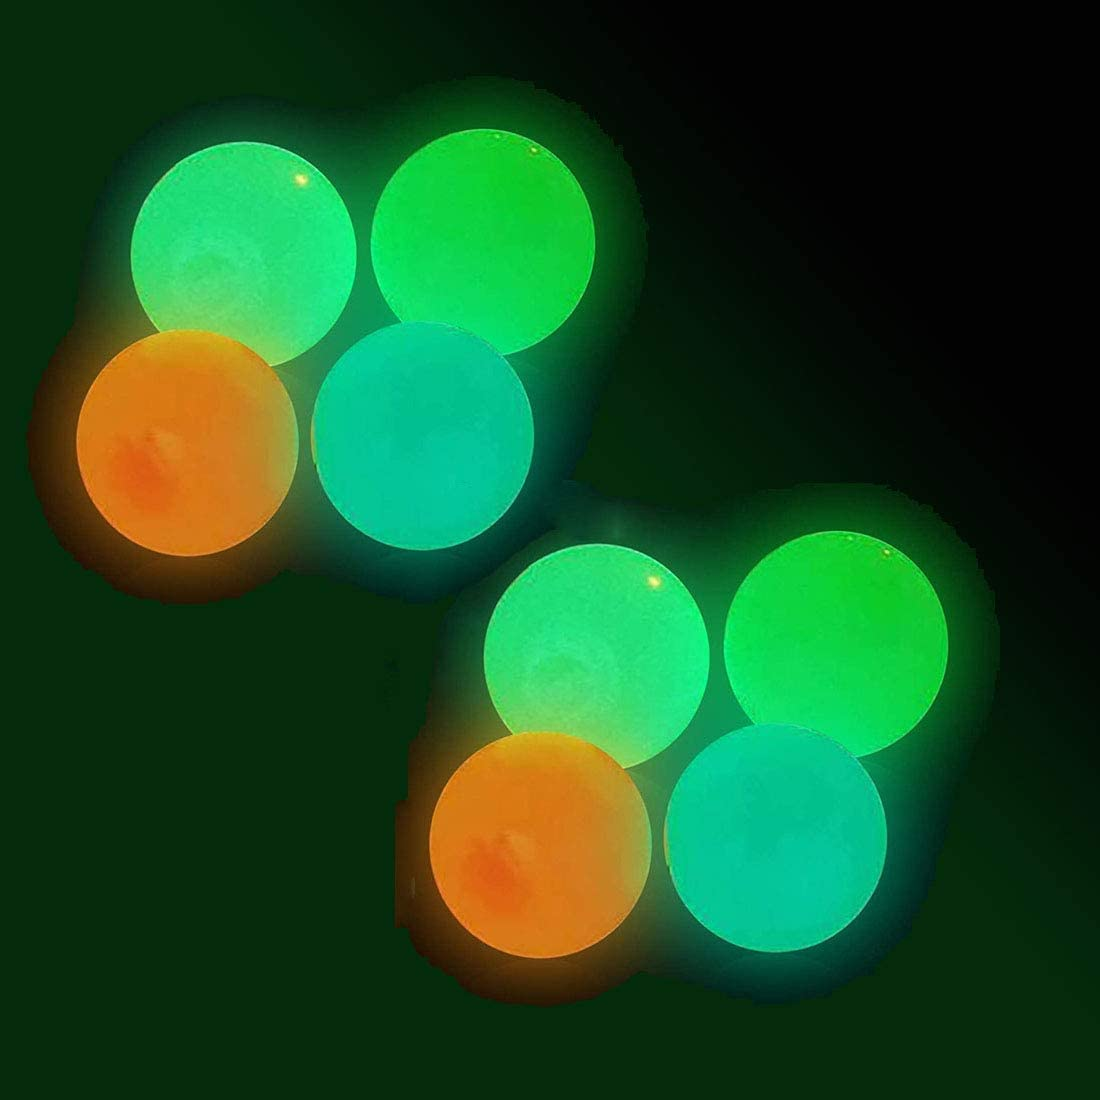 Glow in The Dark Sticky Ceiling Balls,8Pcs,Stress Balls for Adults and Kids,Glow Sticks Balls,Squishy Toys for Kids,Figit Toys,Fun Toy for ADHD, OCD, AnxietyGifts for Adults and Kids